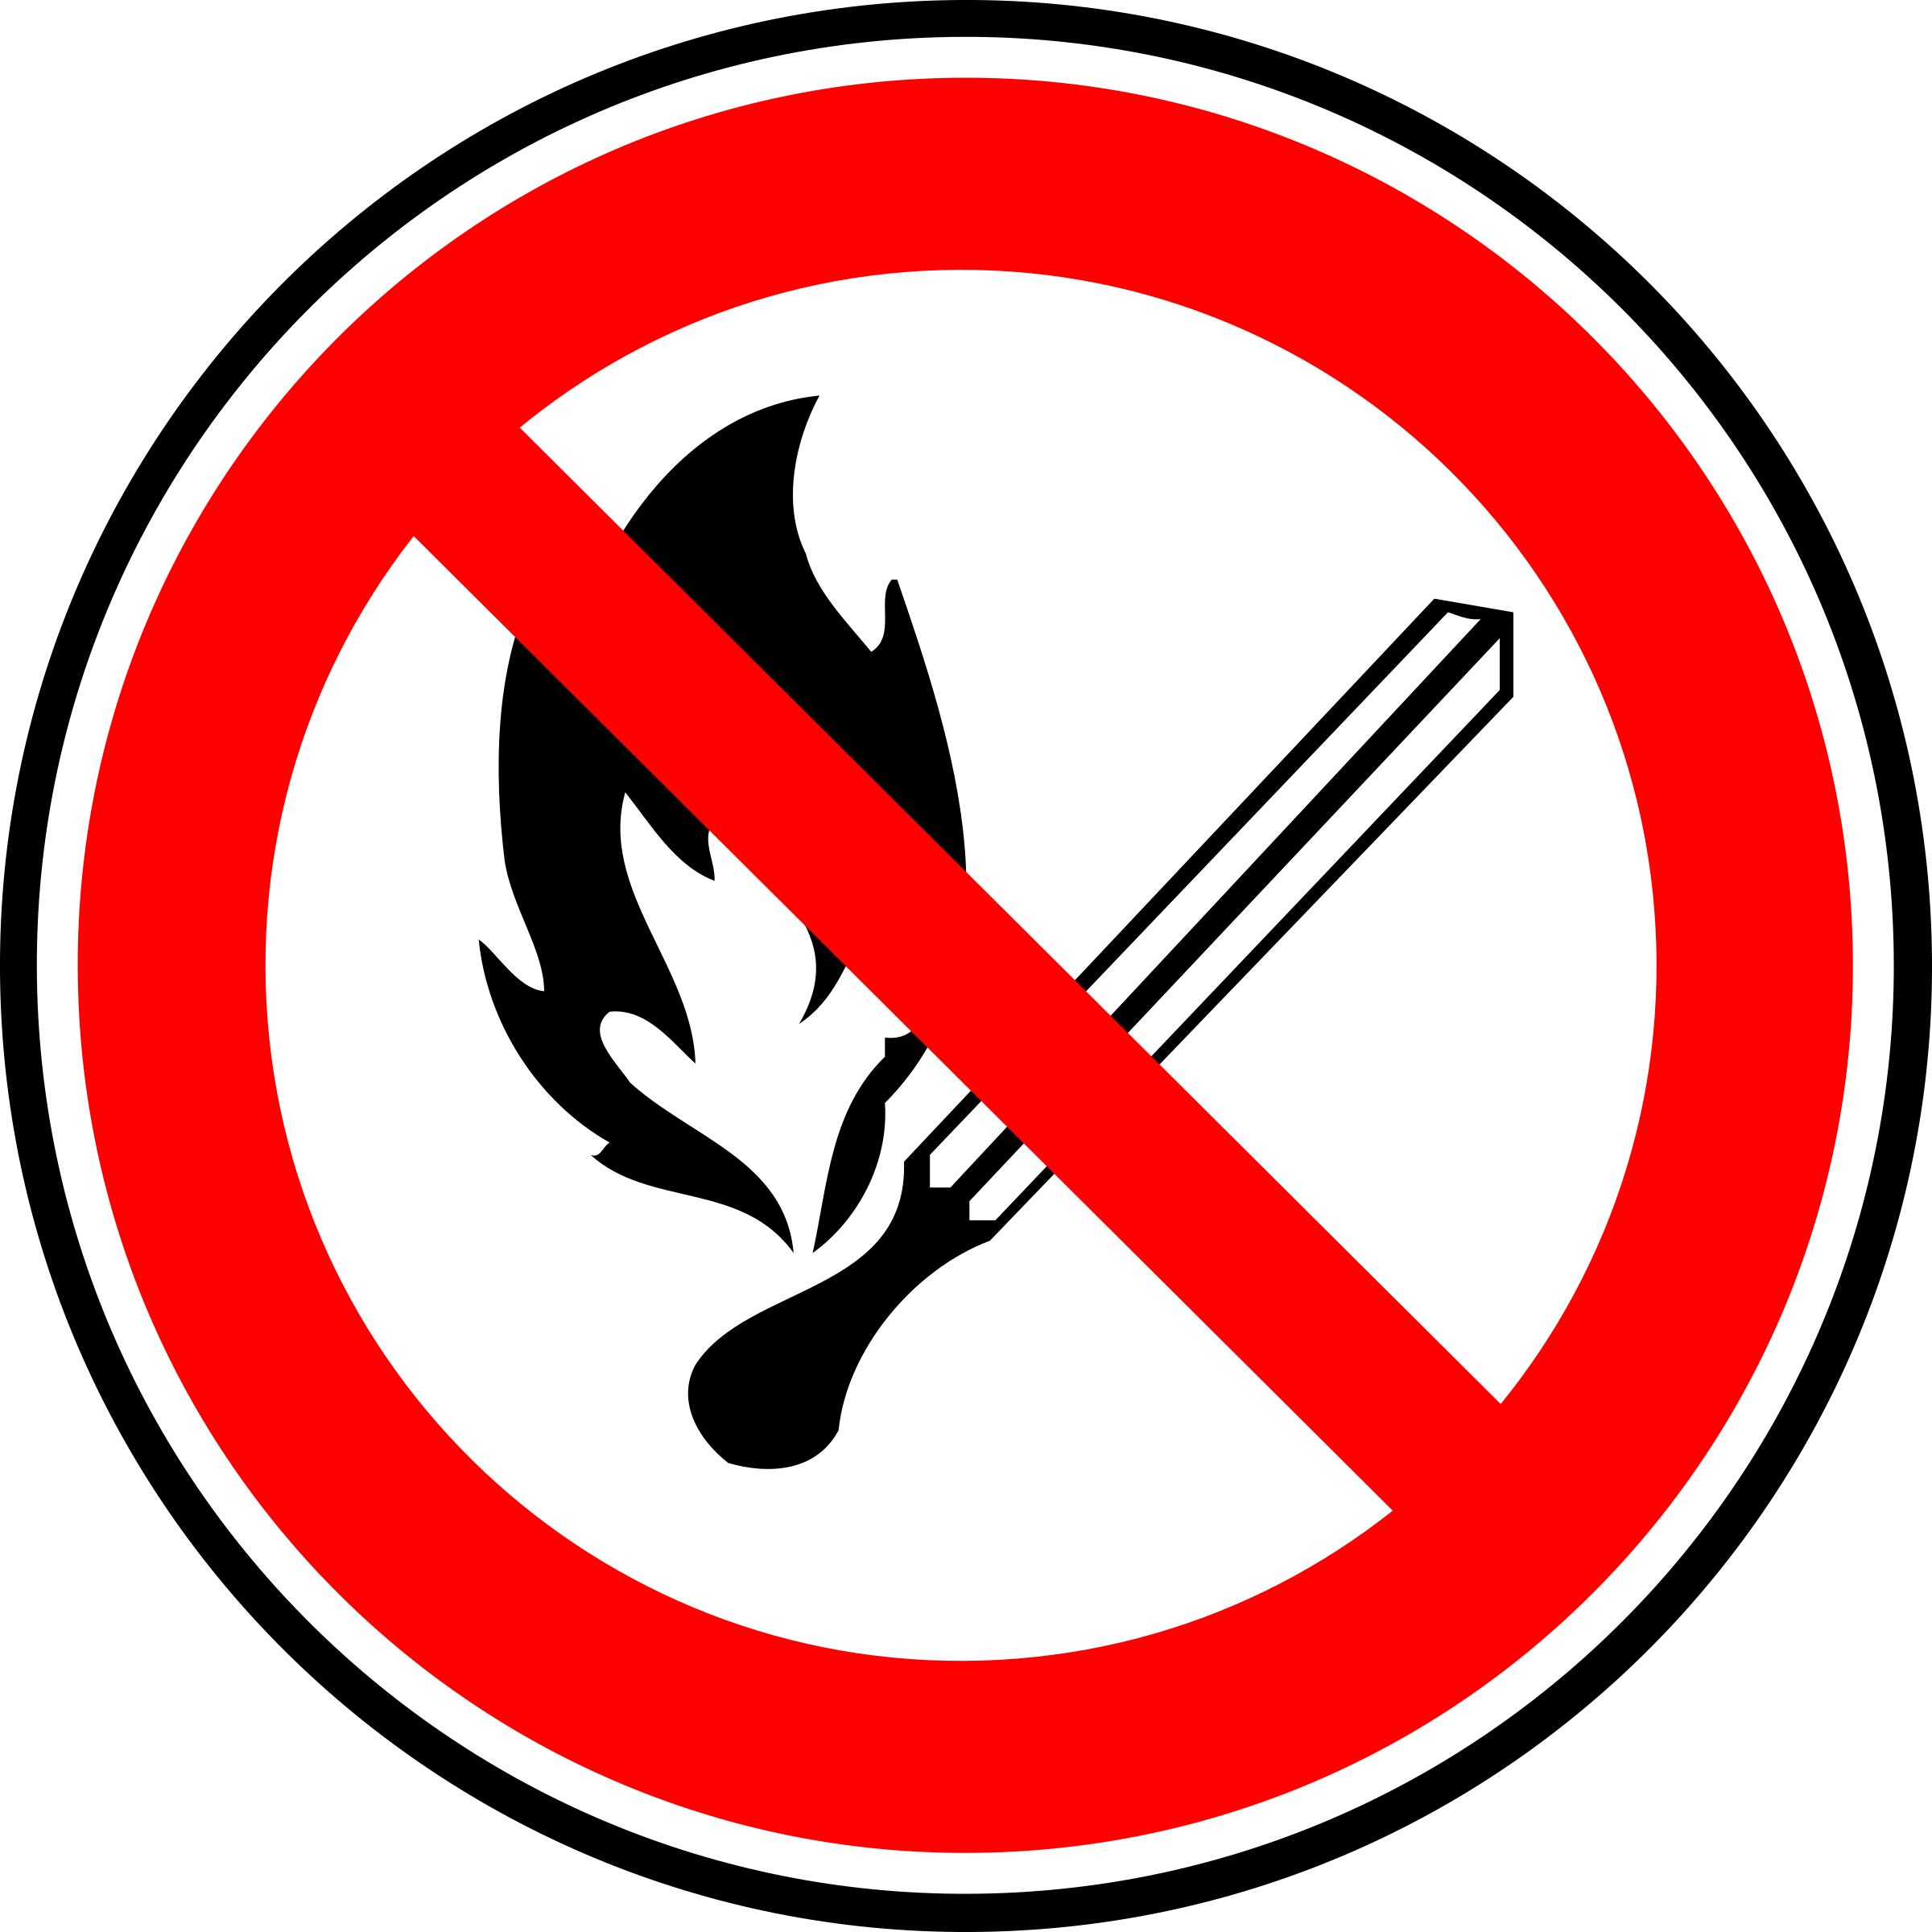 Fire forbidden sign by yves_guillou